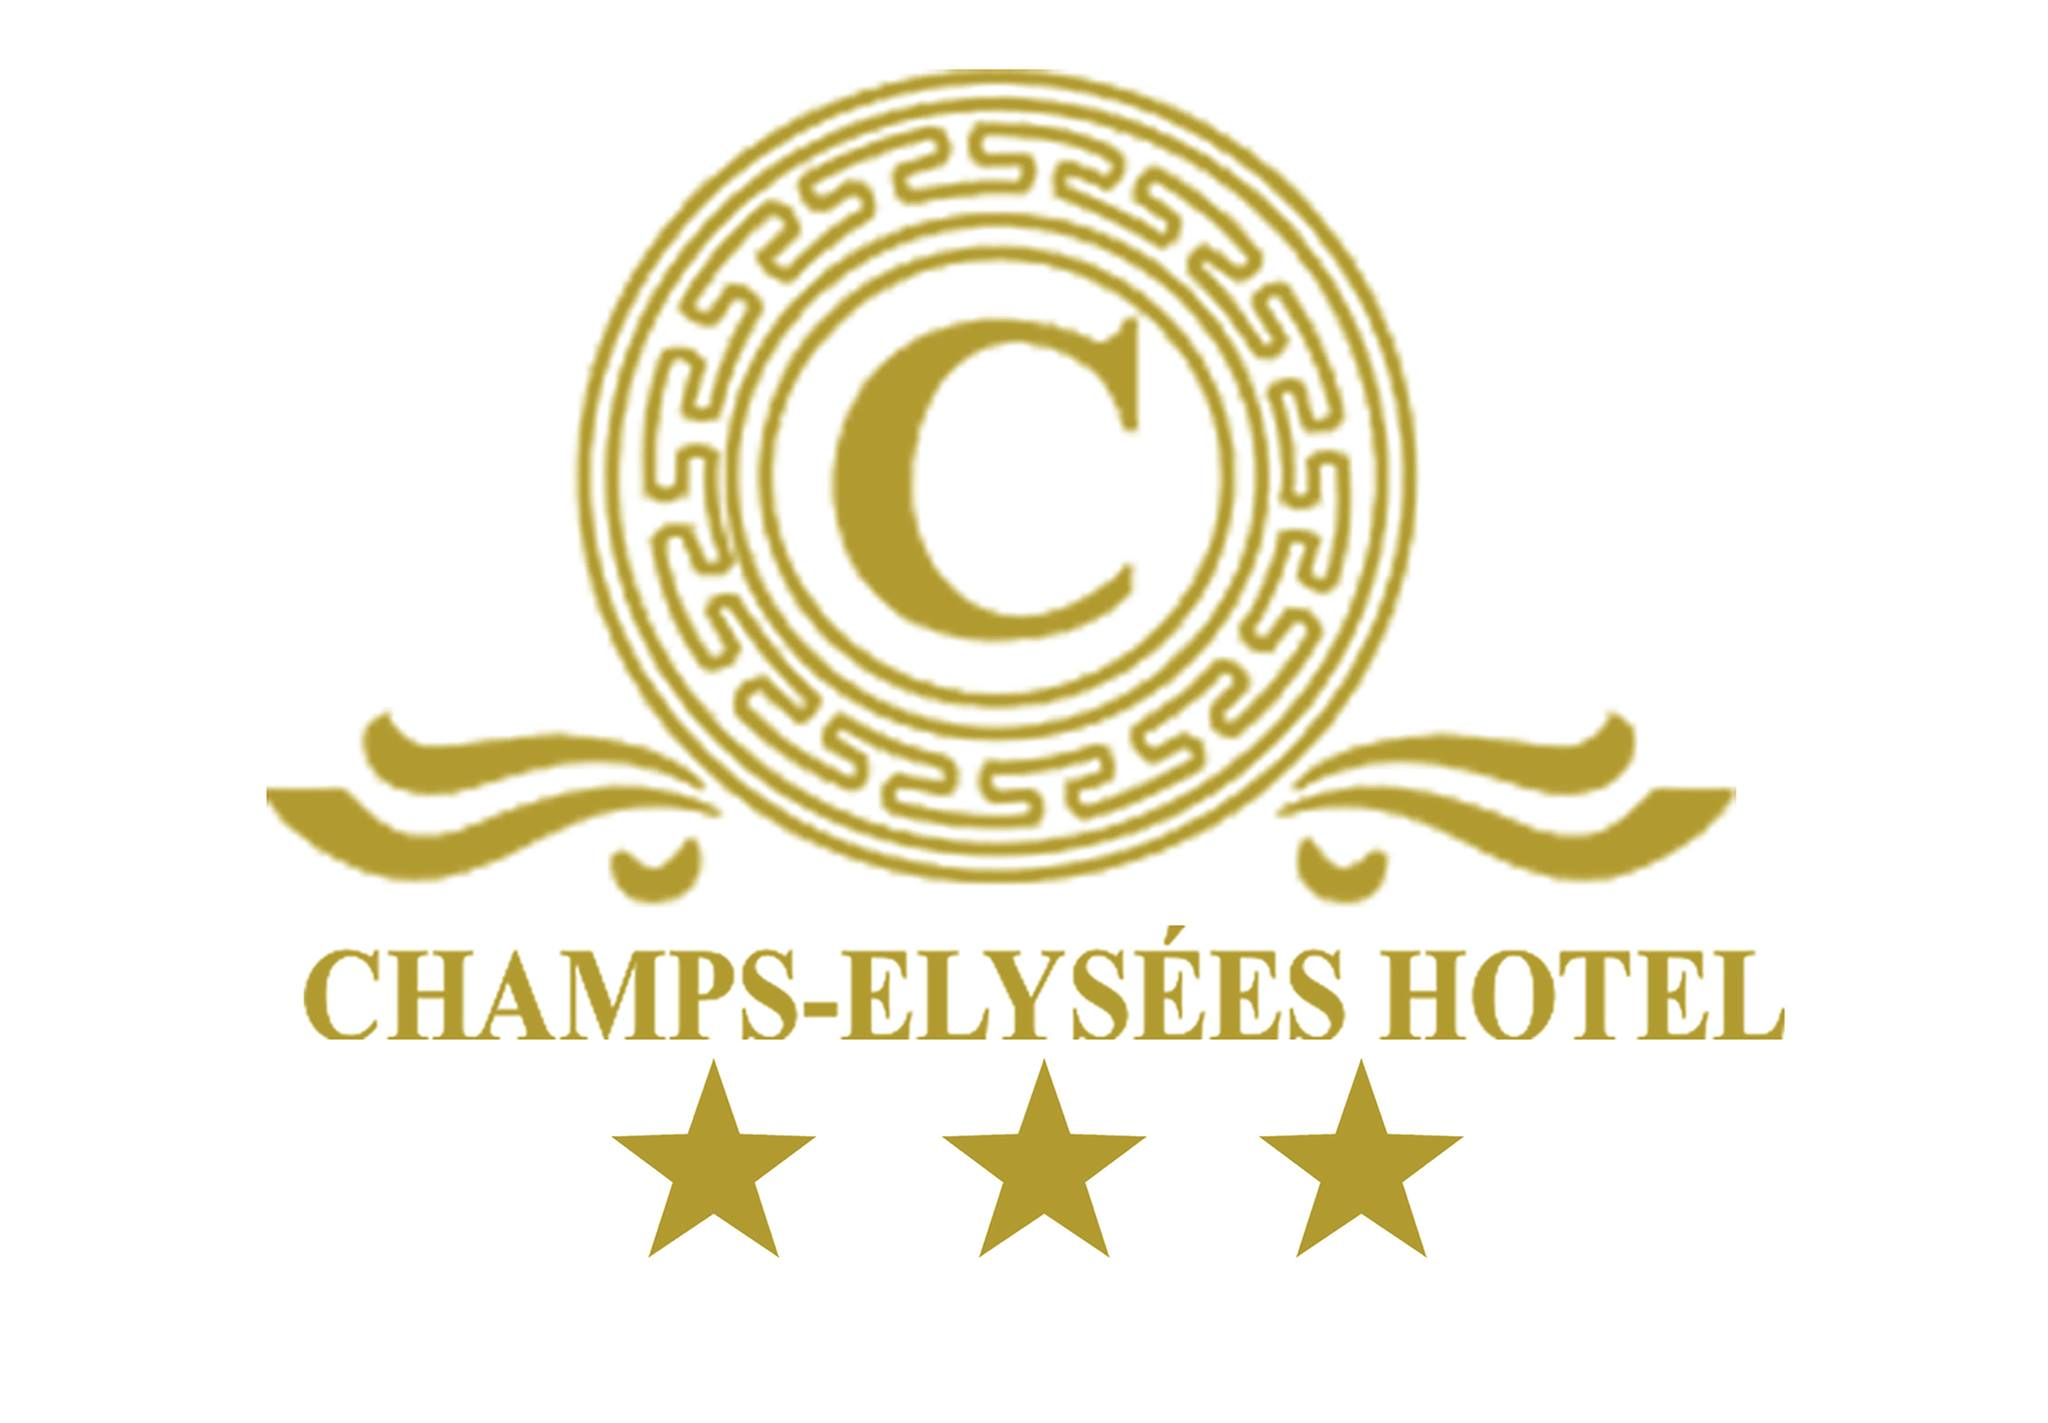 Champs Elysees Hotel & Spa